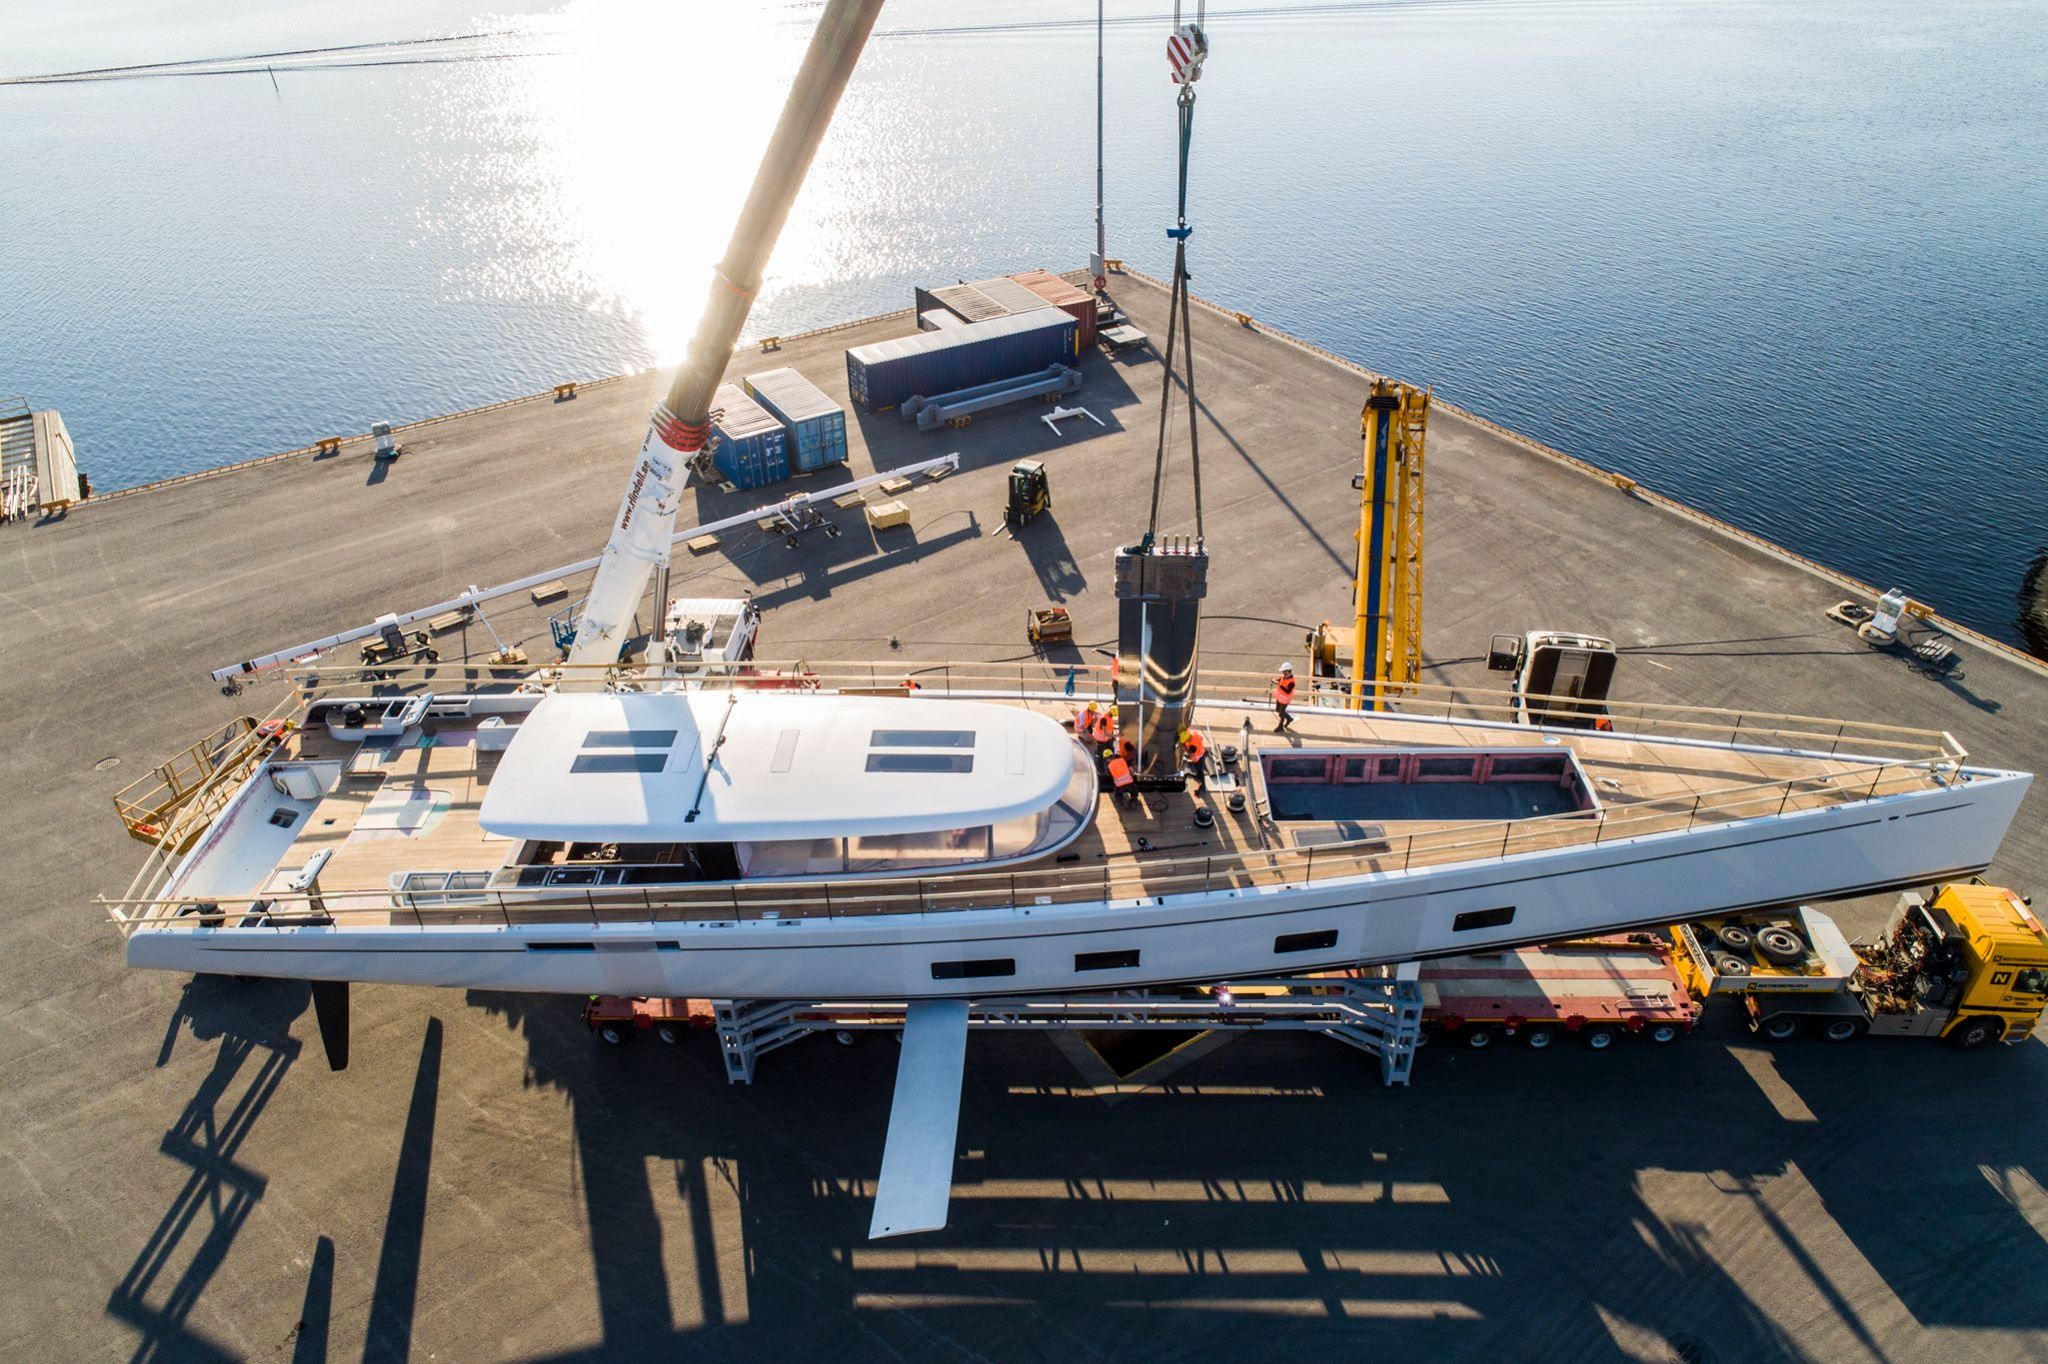 Baltic 142 Canova superyacht getting ready for launch - Photo © Baltic Yachts